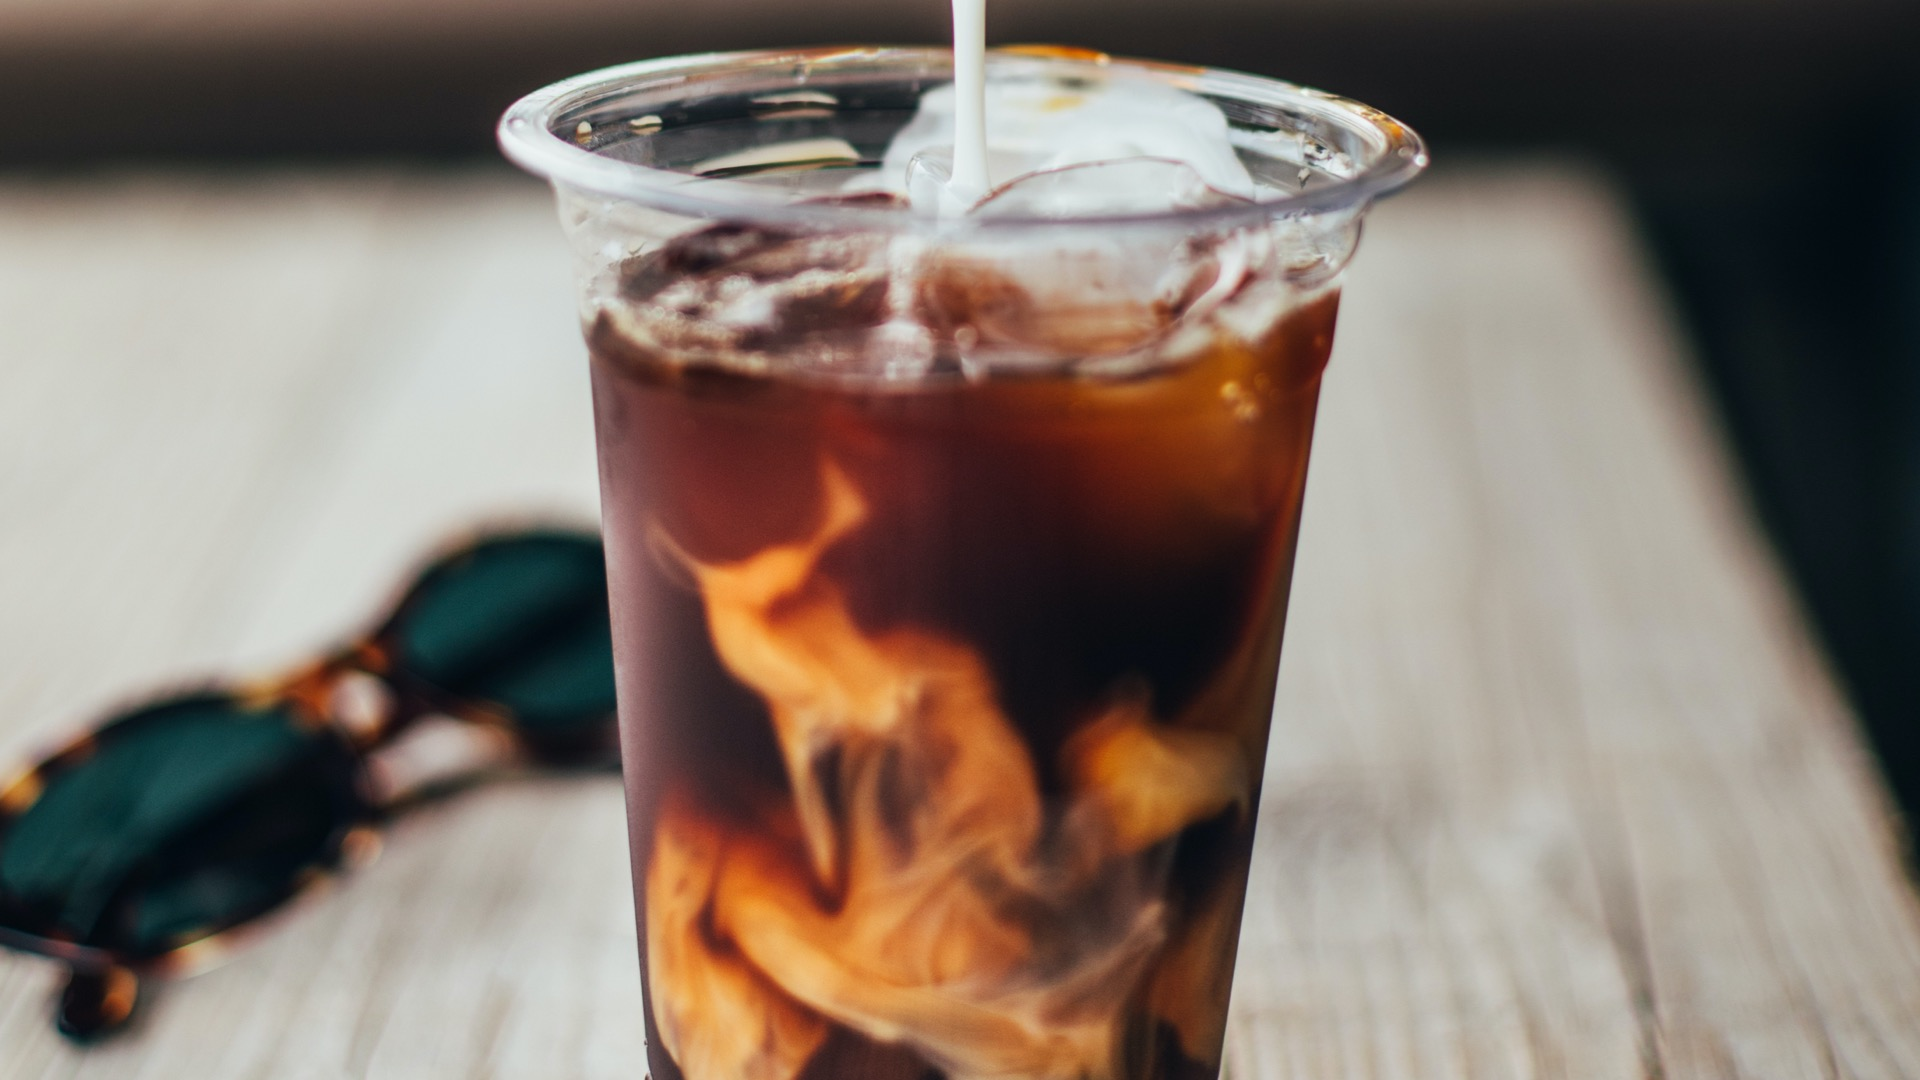 Pouring milk into a cold brew from a Columbia, South Carolina coffee shop